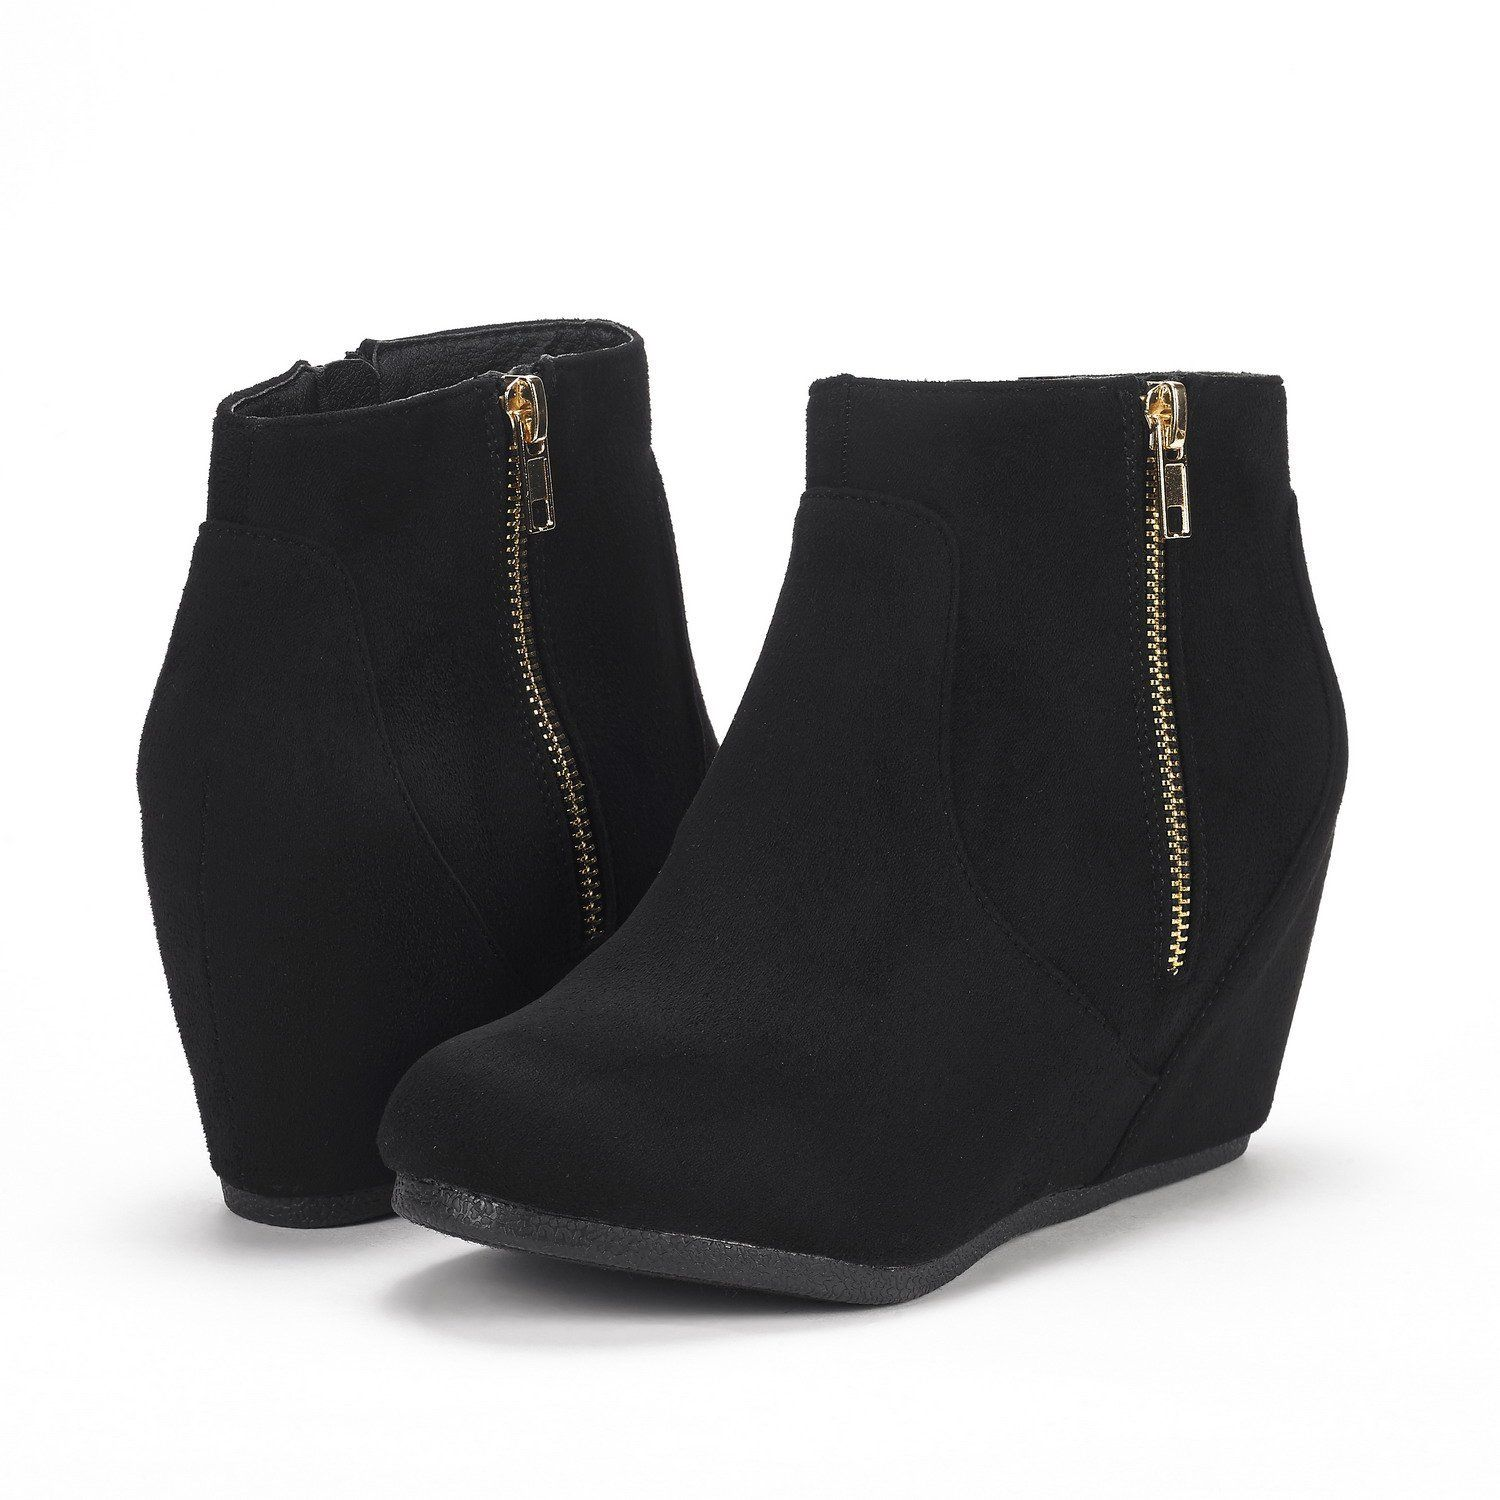 Wedge ankle boots, Wedge boots outfit